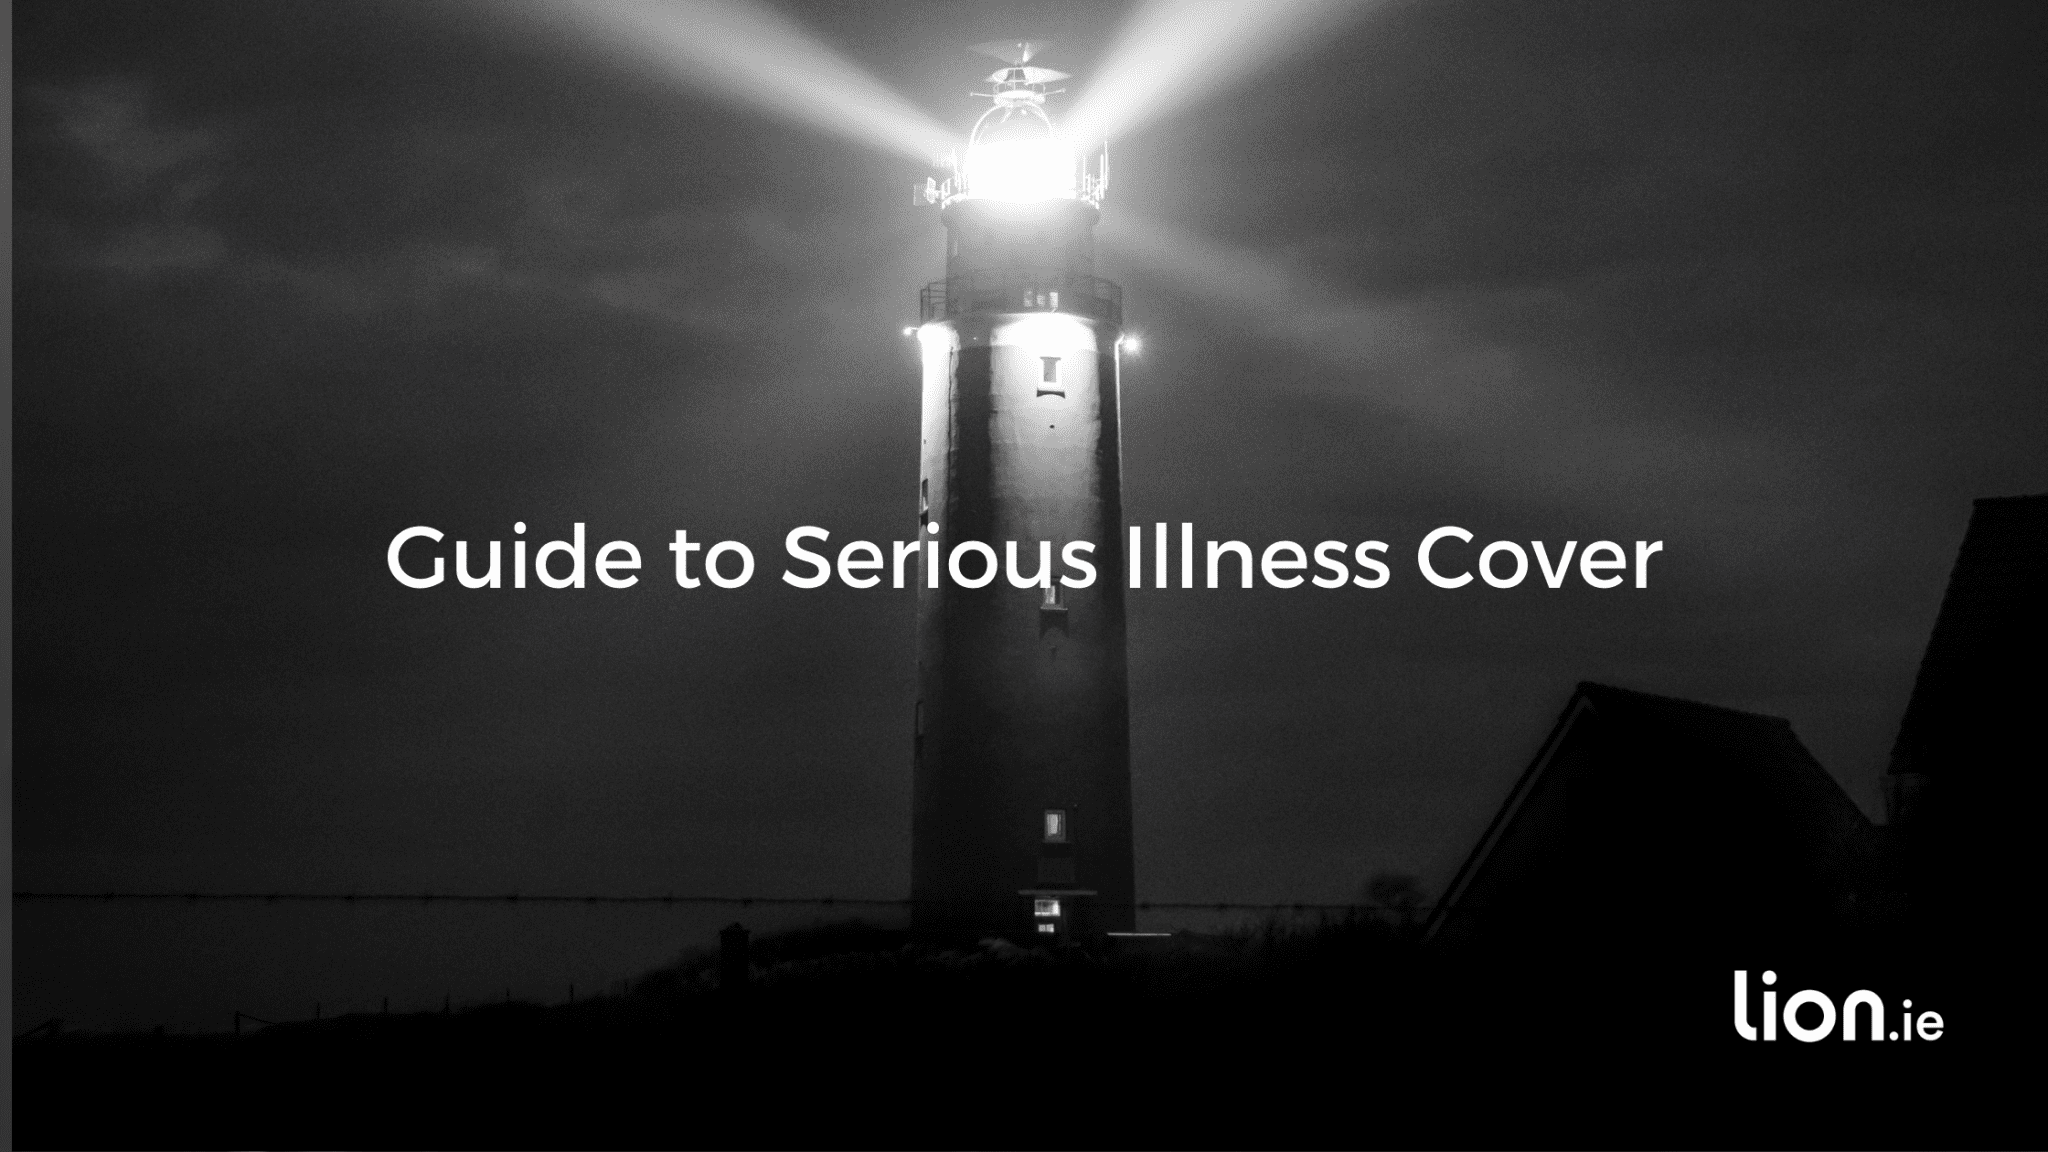 Guide to Serious Illness Cover